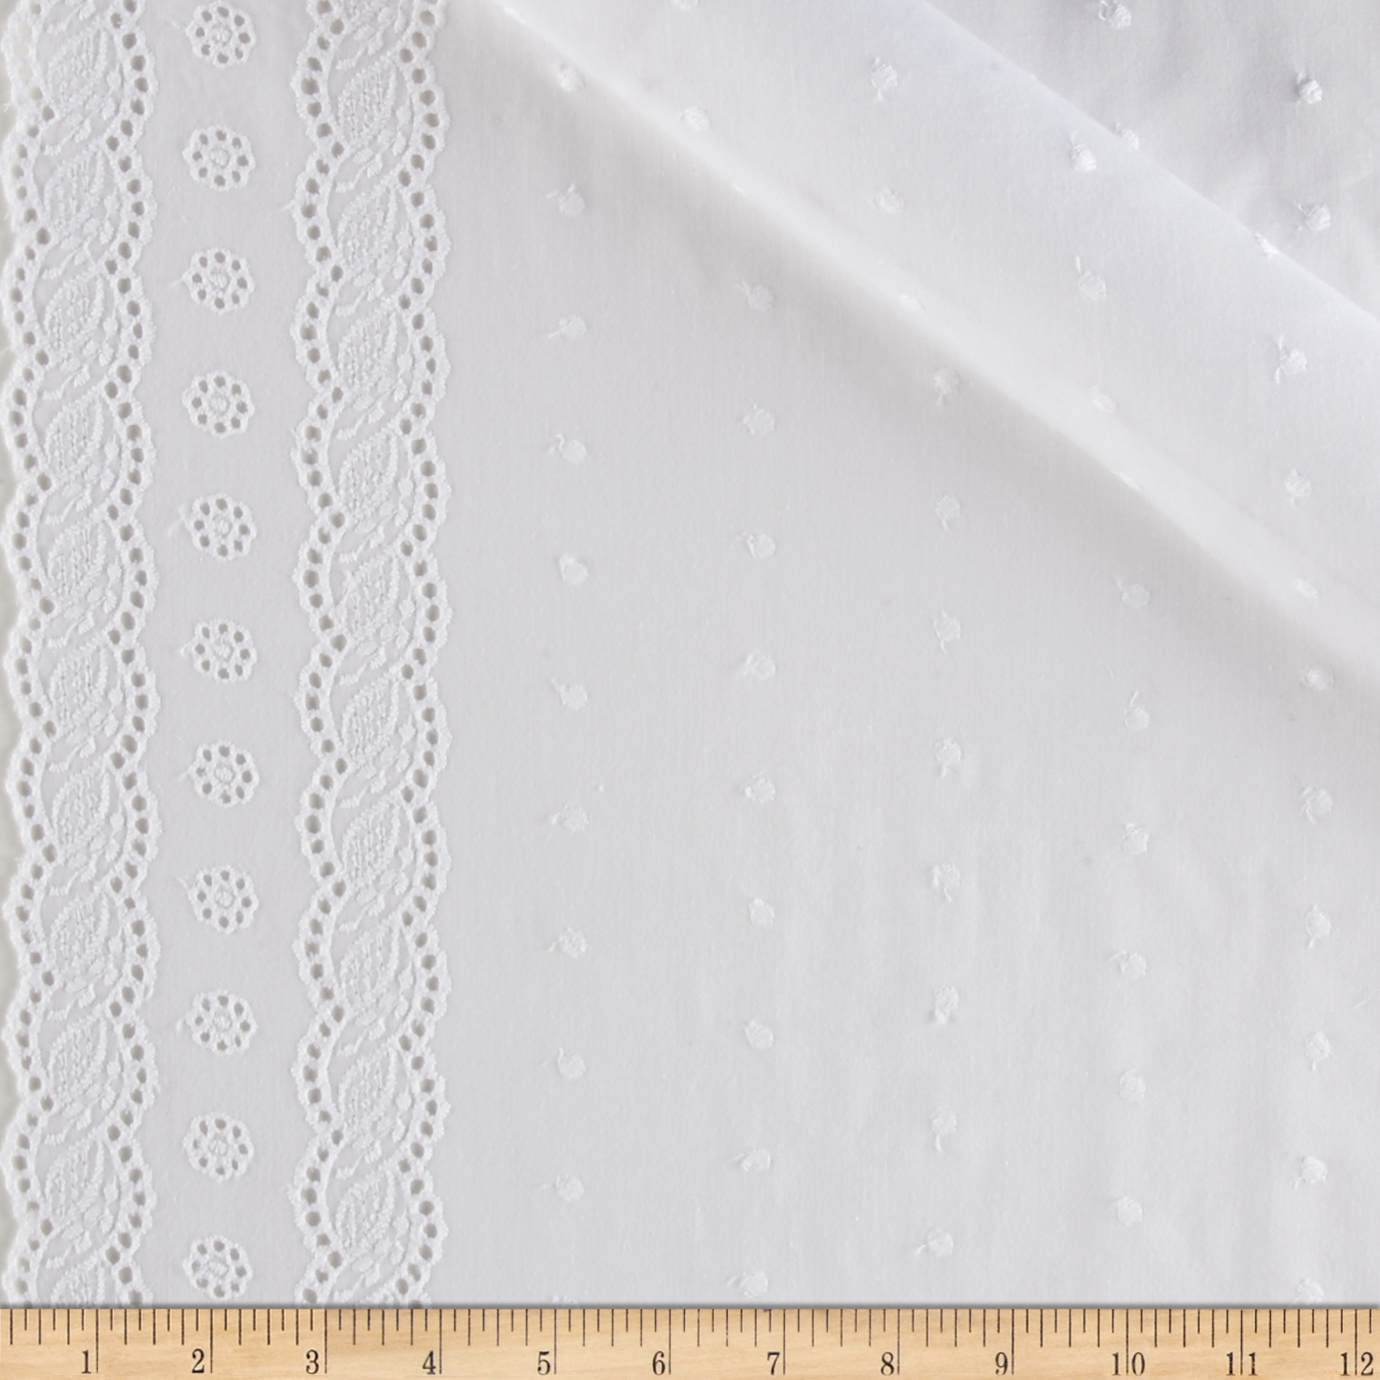 Imperial Eyelet Flounce 4'' Twist Border White Fabric by Spechler-Vogel in USA